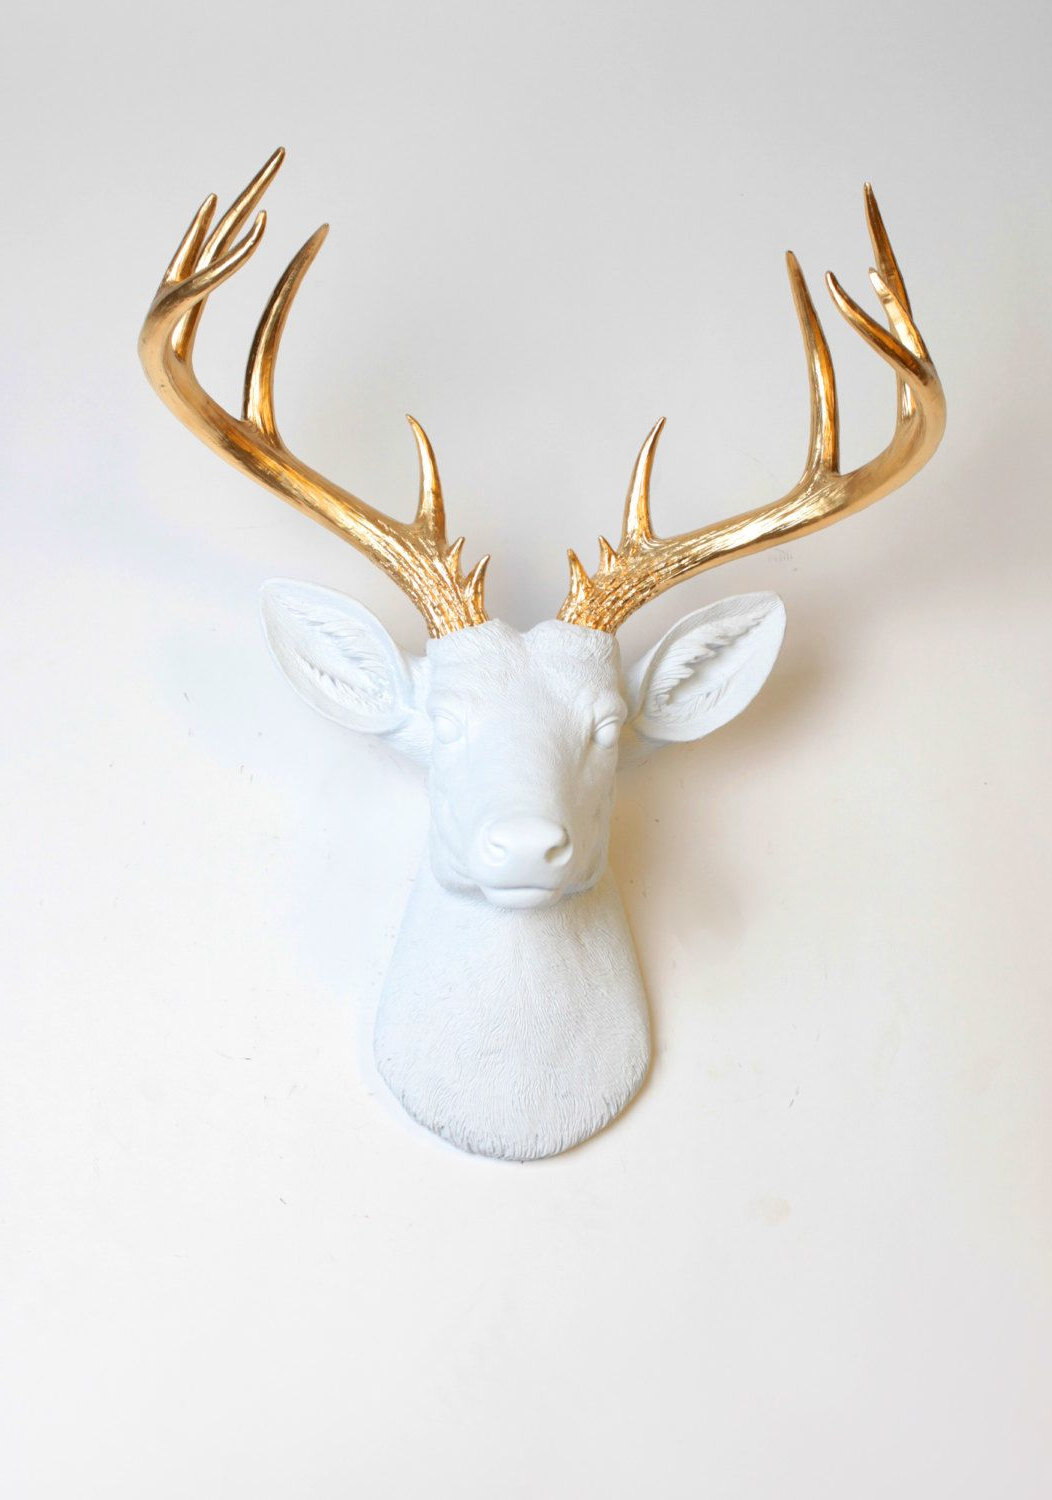 Most Current Large Deer Head Faux Taxidermy Wall Decor Regarding Deer Head Wall Mount Decor – The Xl Alfred – White And Gold Deer (View 14 of 20)